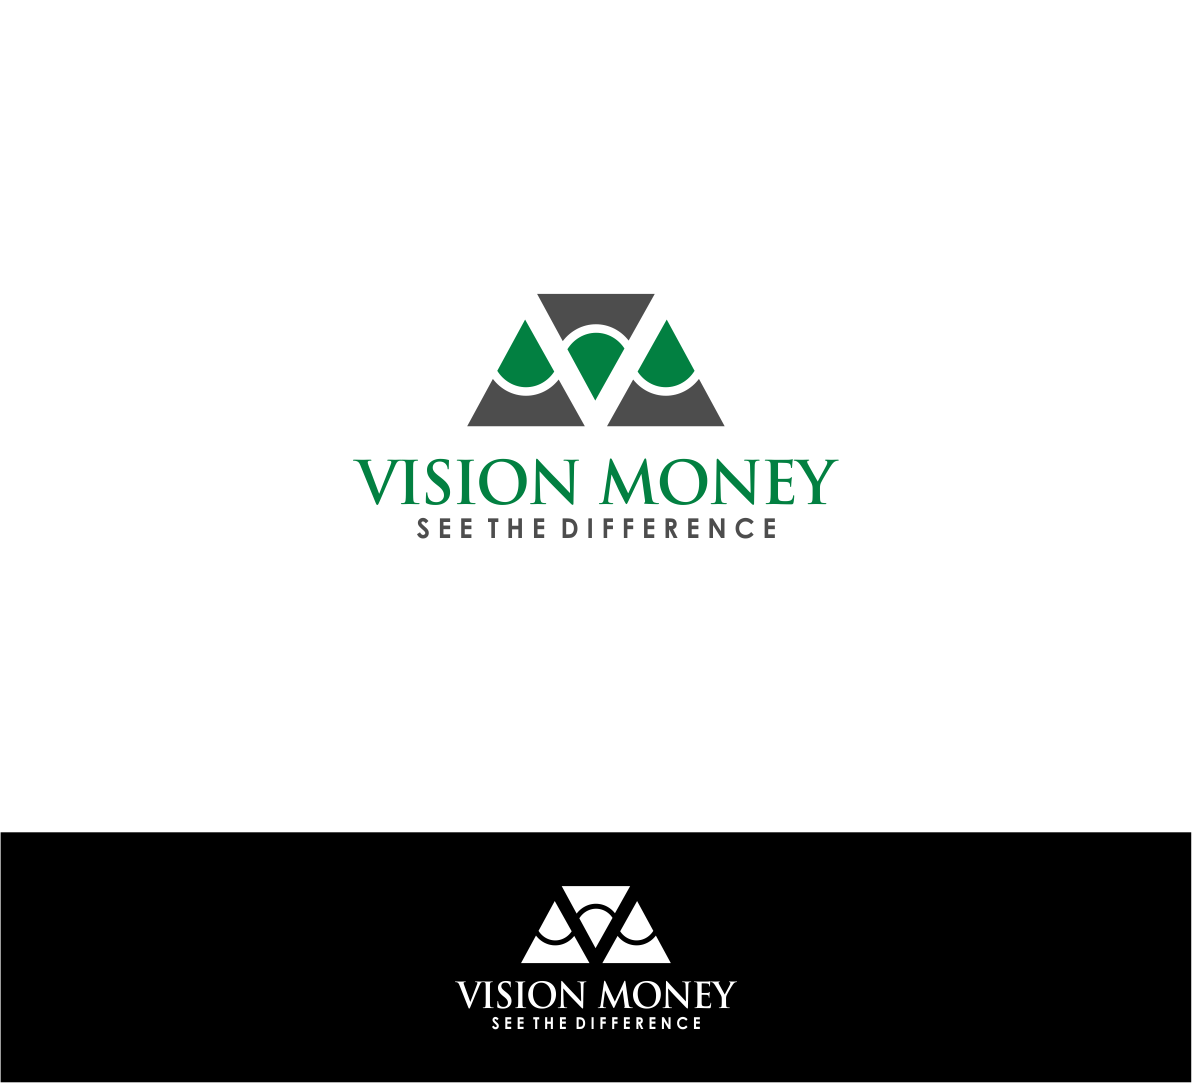 Logo Design by haidu - Entry No. 62 in the Logo Design Contest Captivating Logo Design for VISION MONEY.